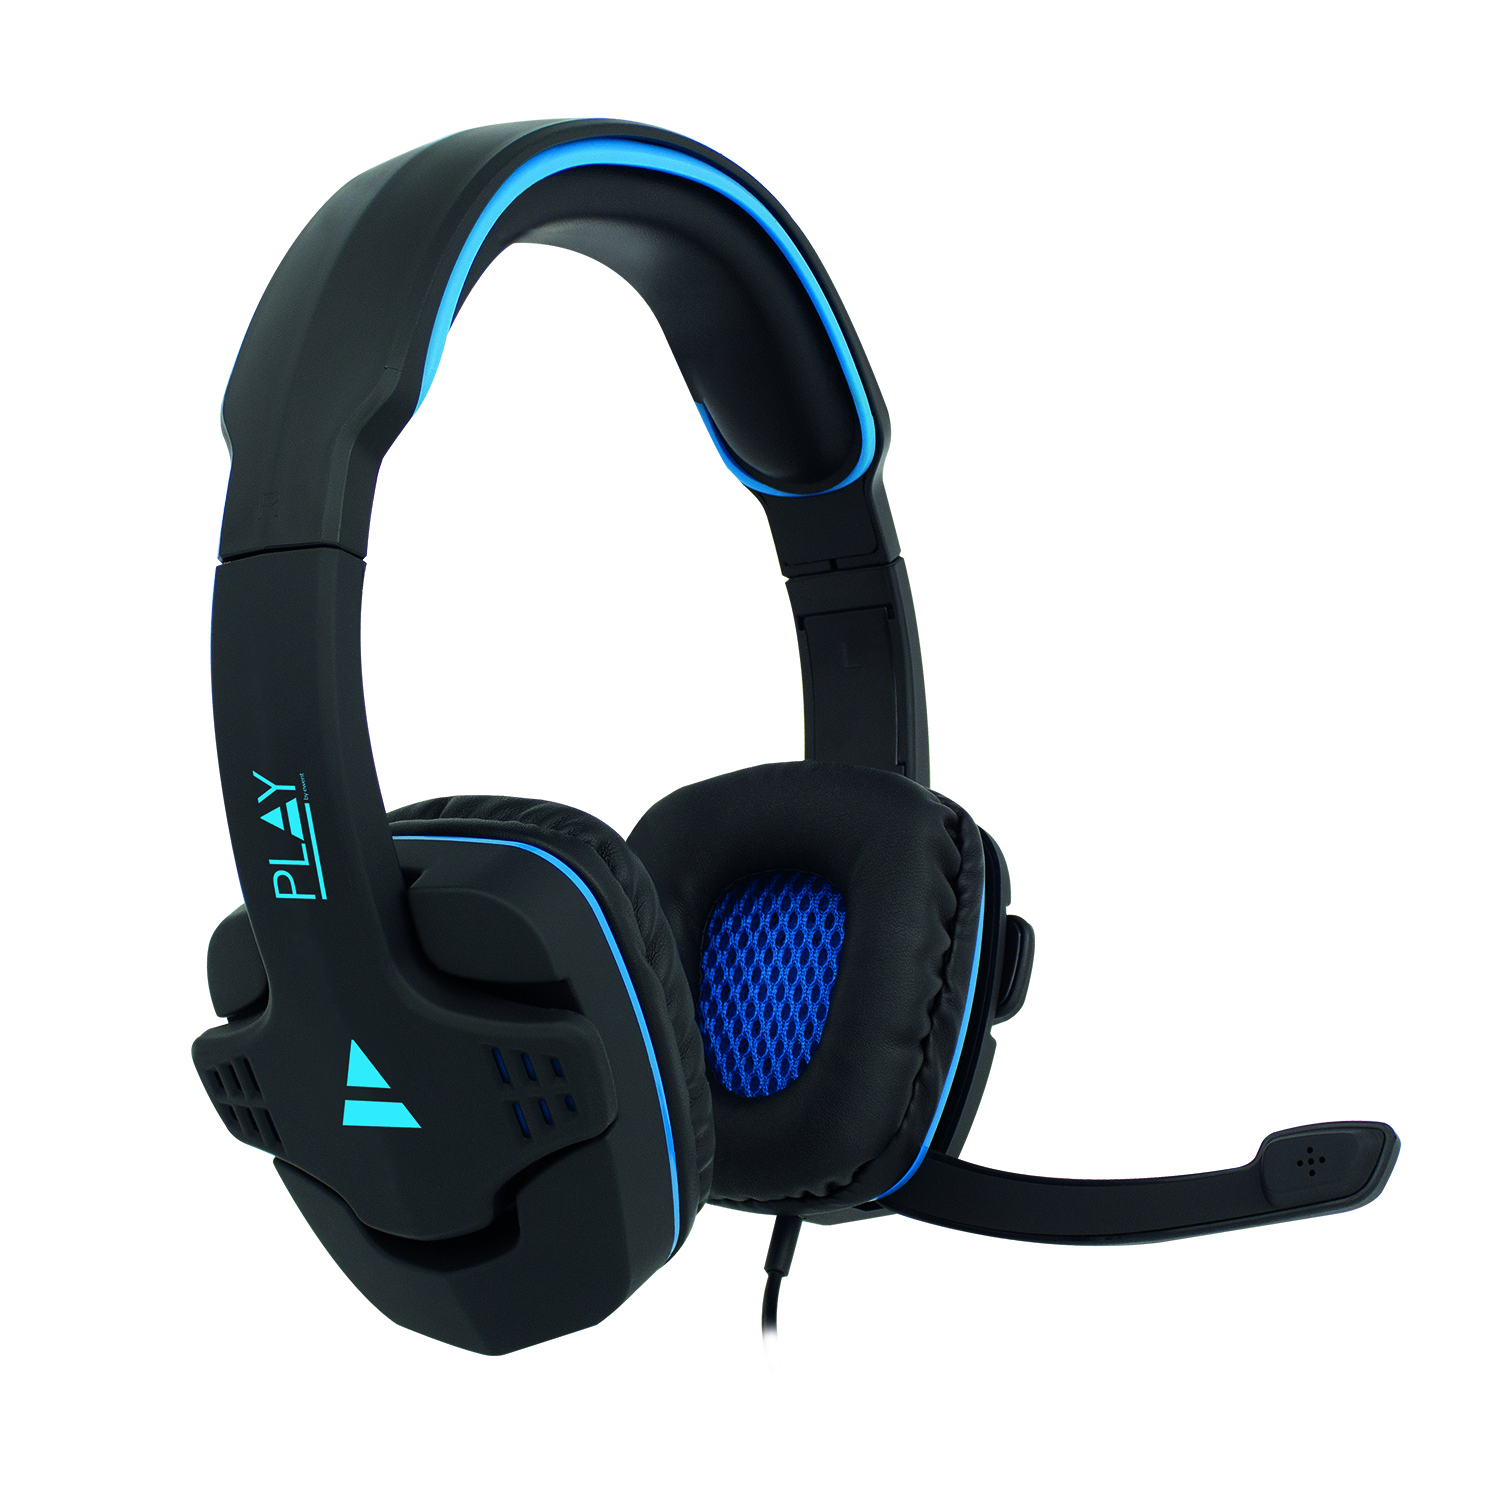 CUFFIA+MICROFONO GAMING PLAY PL3320